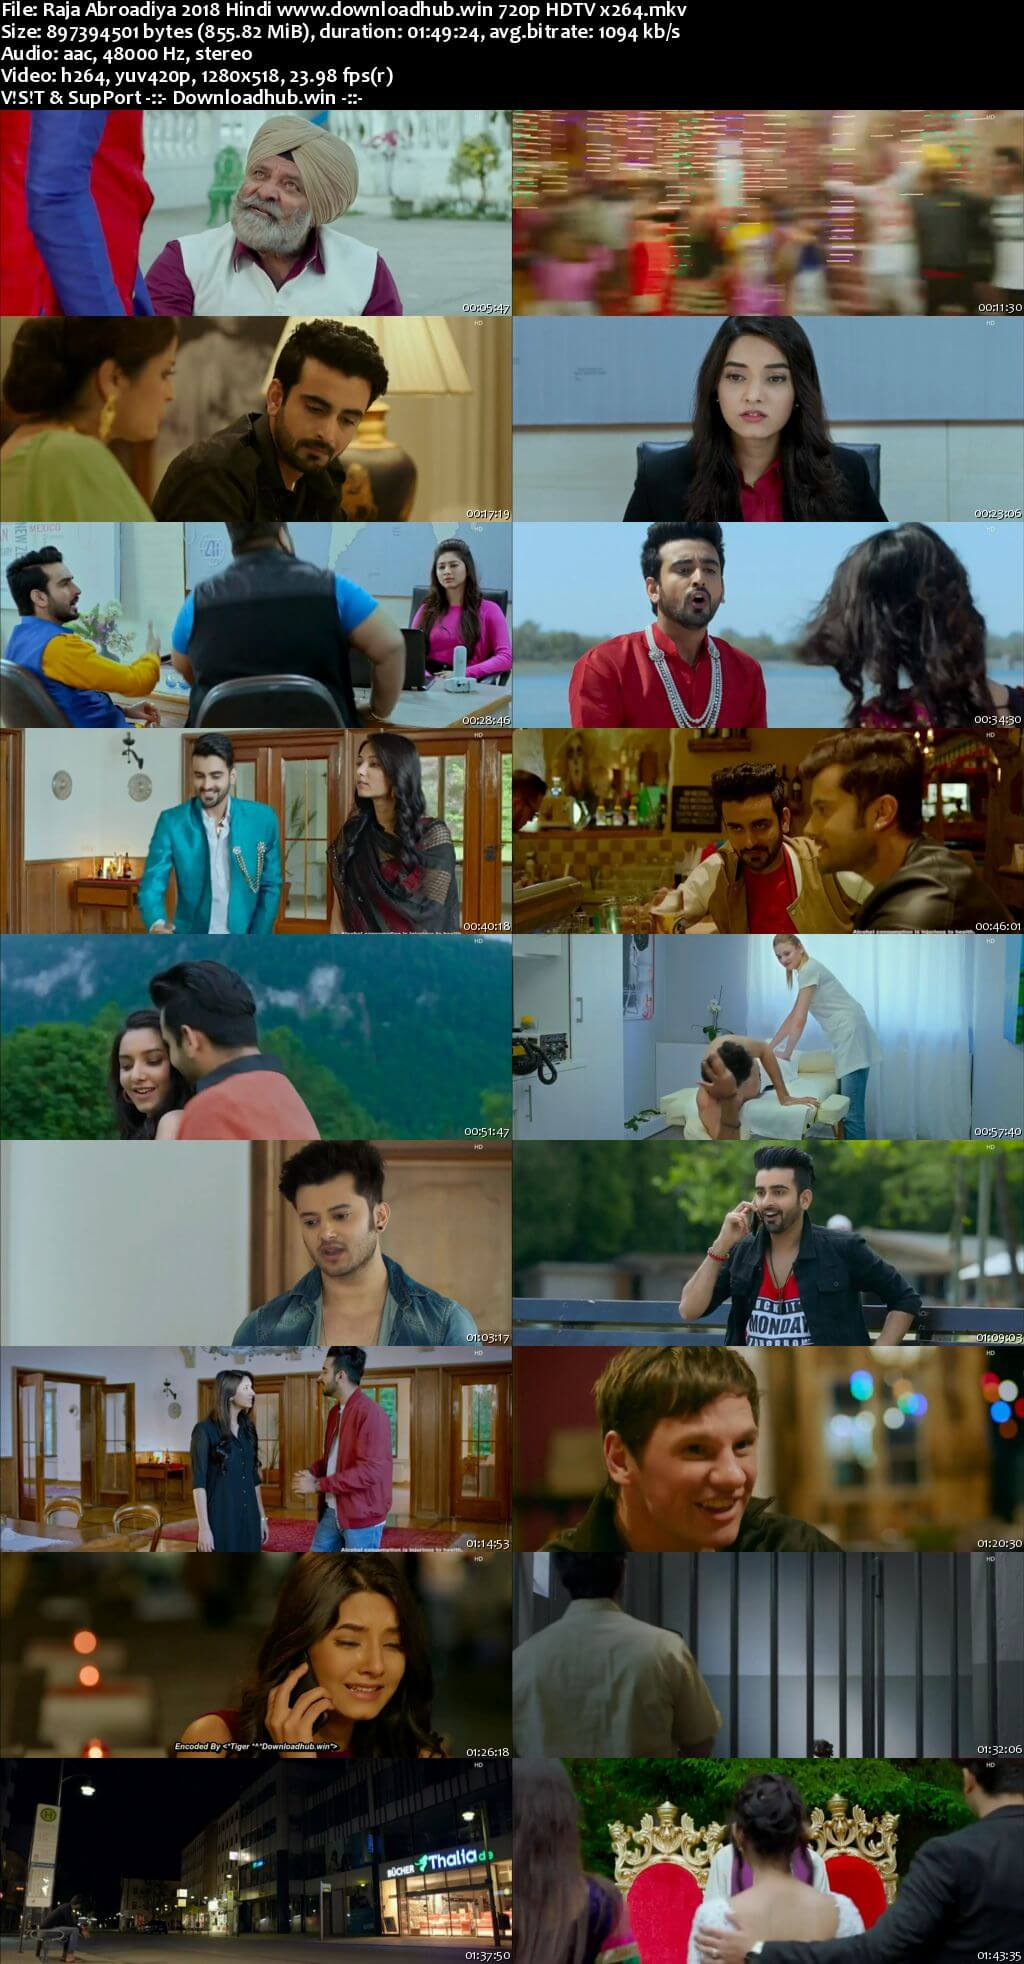 Raja Abroadiya 2018 Hindi 720p HDTV x264